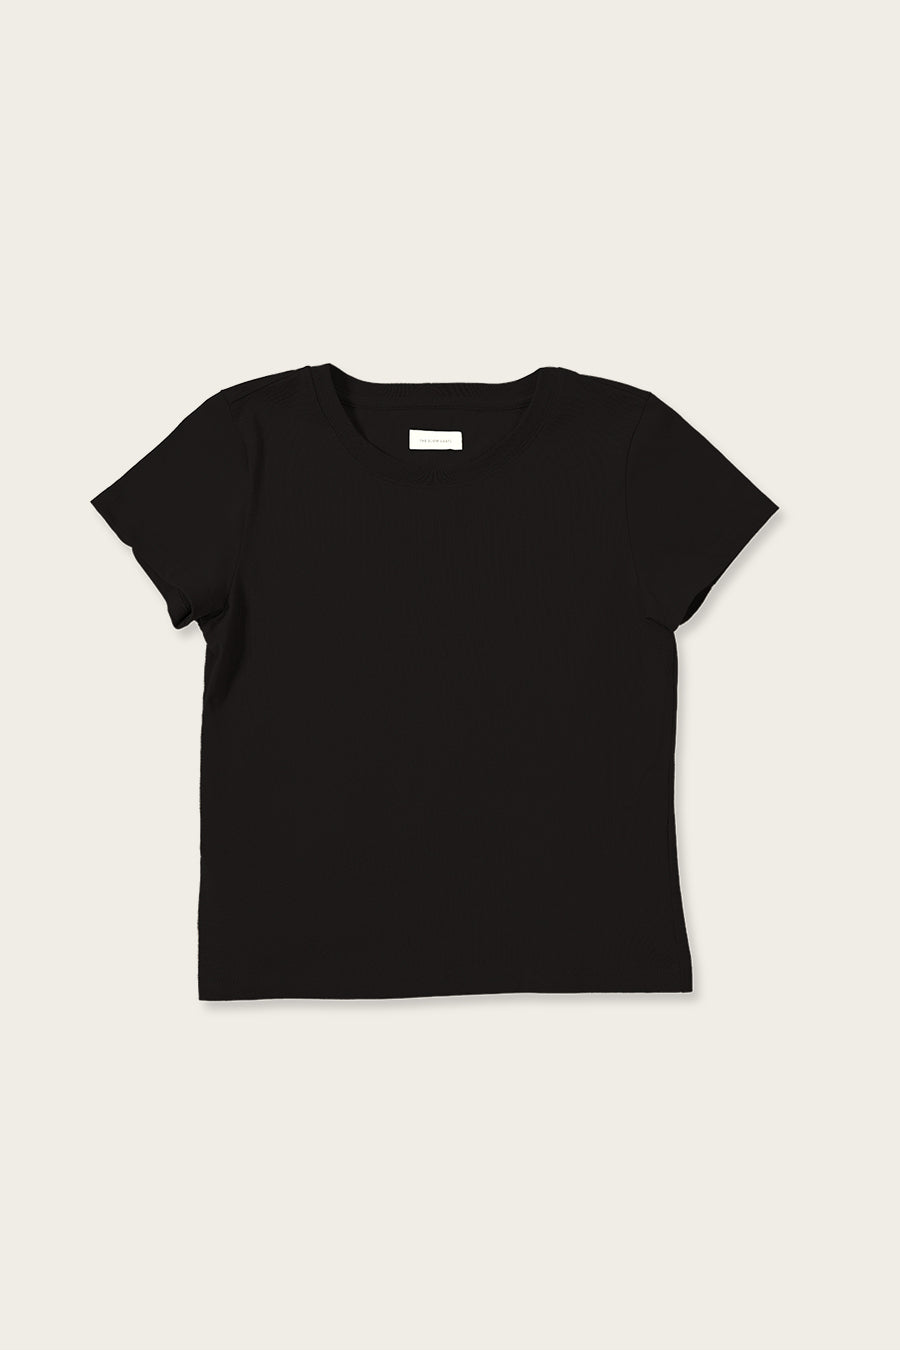 The Fitted Tee Black